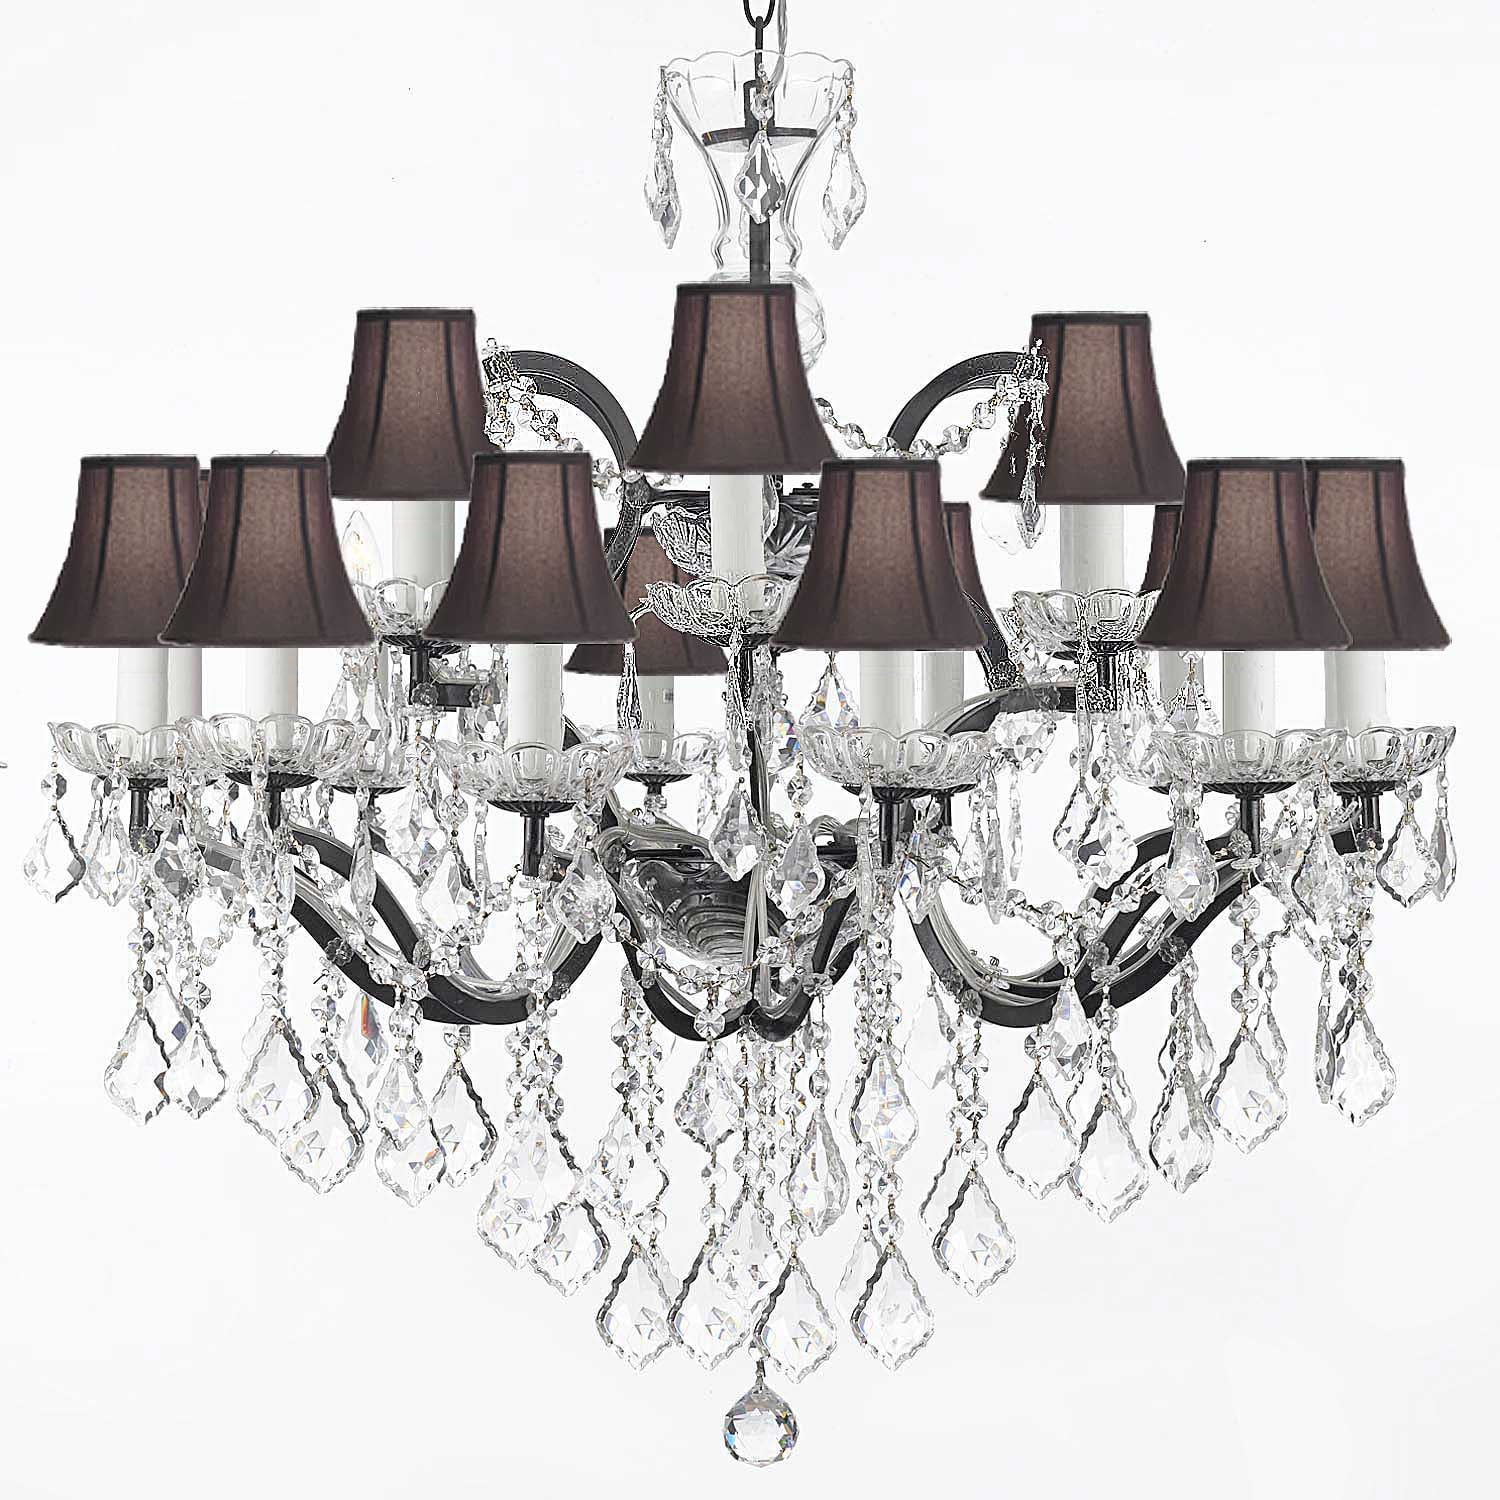 19th C Rococo Wrought Iron and Crystal 18 Light Chandelier with